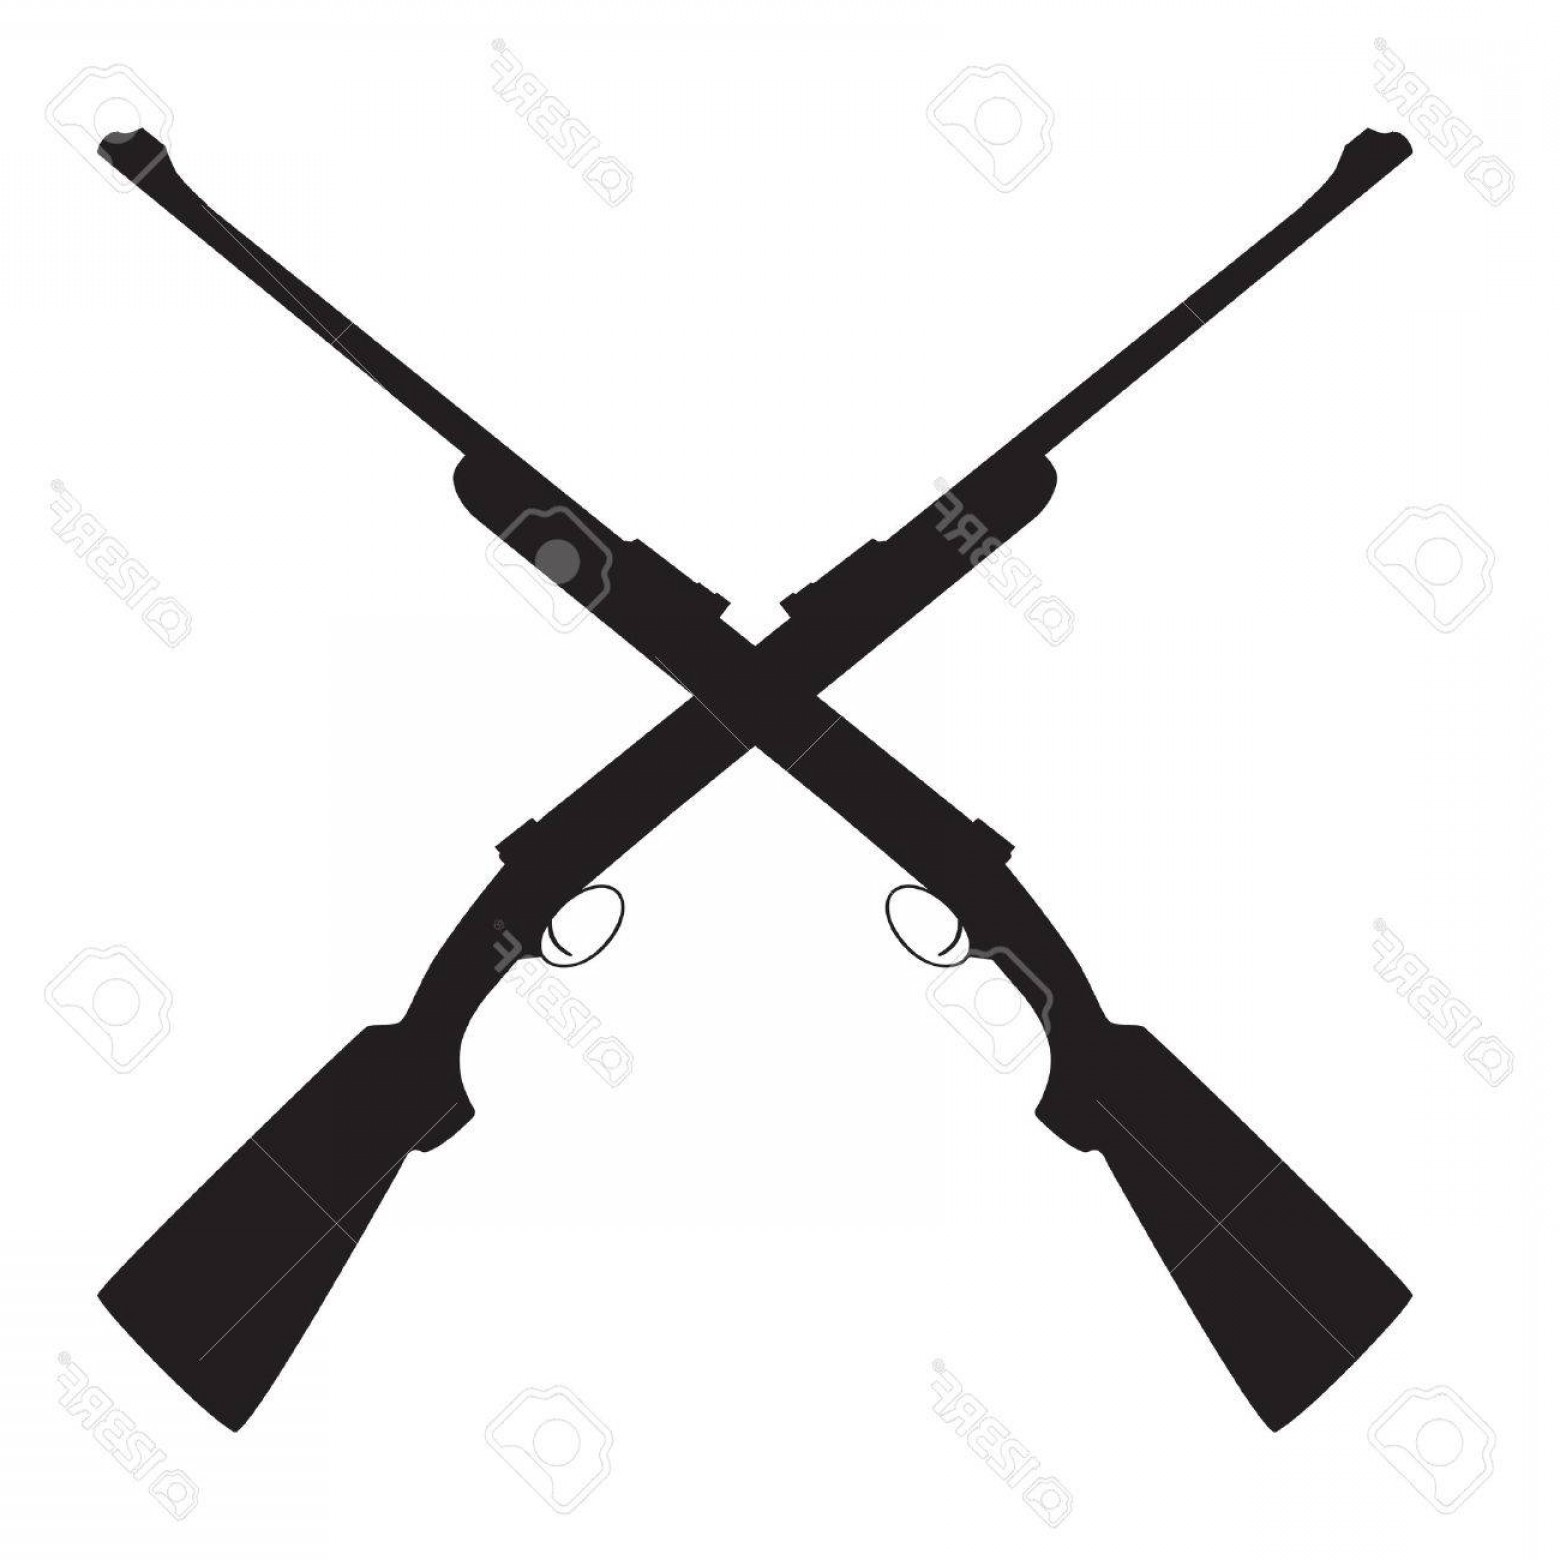 Hunting Rifle Vector Cross: Photostock Vector Two Crossed Rifle Vector Illustration Hunting Rifle Sniper Rifle Old Rifle Revolution Symbol